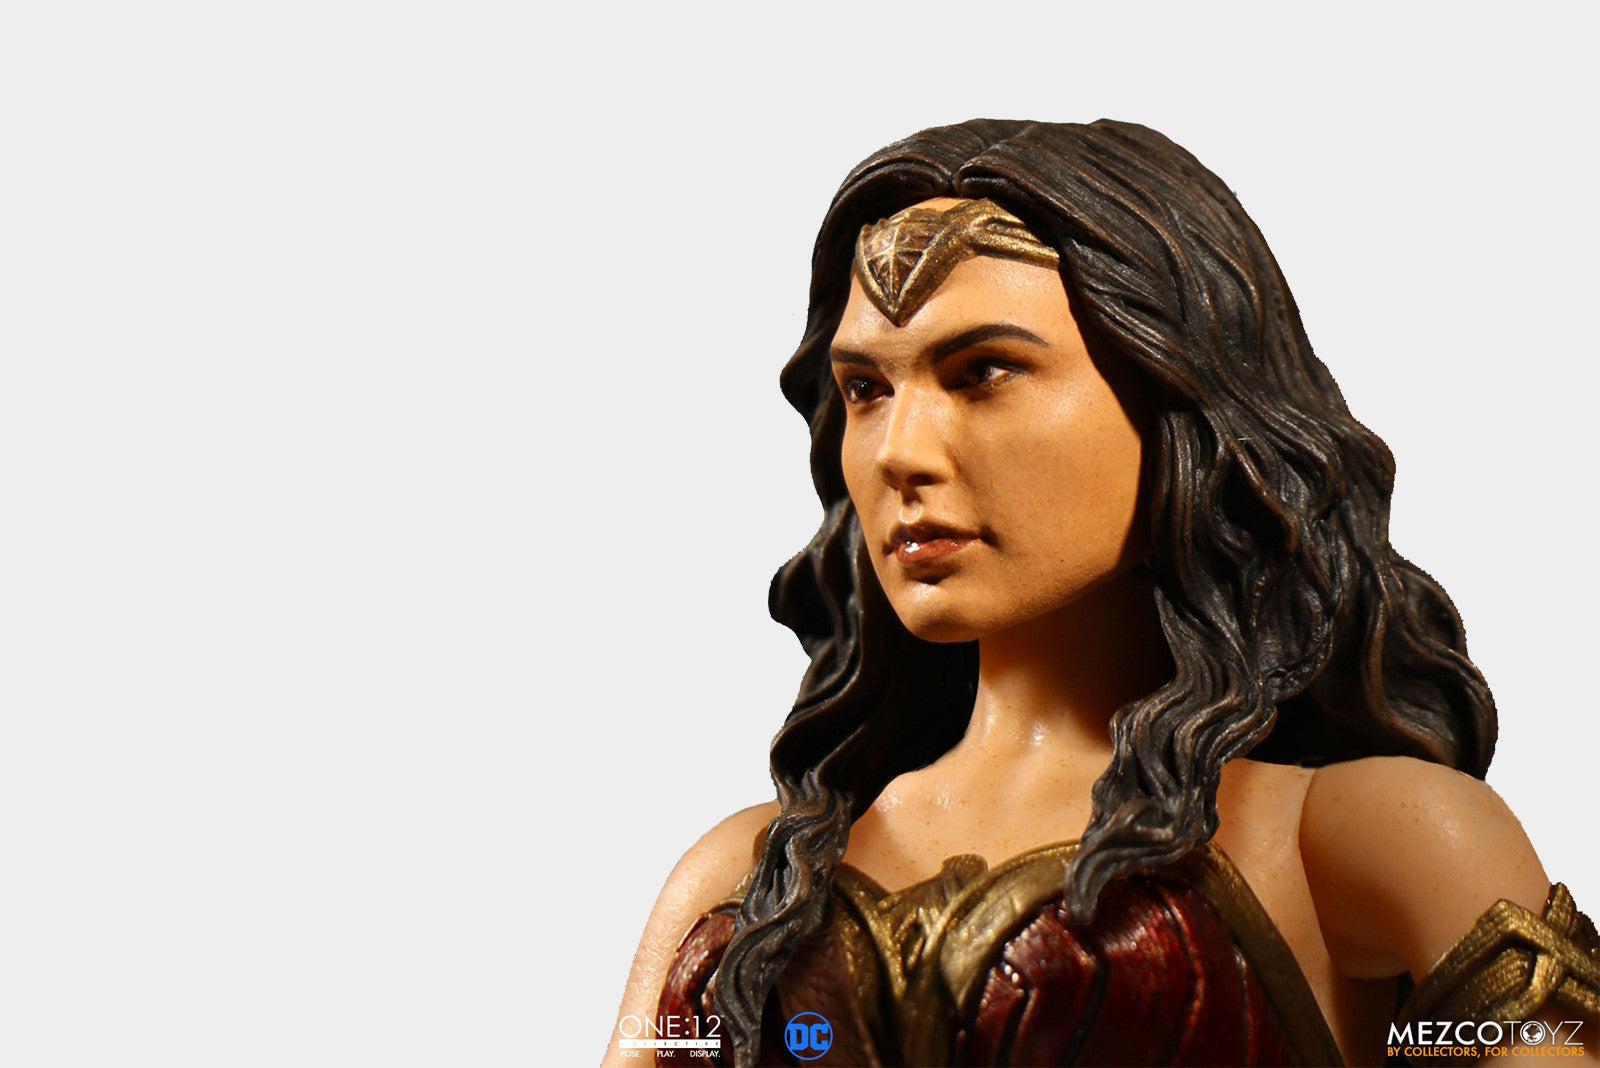 Mezco Toyz - 1:12 Collective DC Universe Wonder Woman Figure Promotional Images and Info - Release Date: Fall 2017